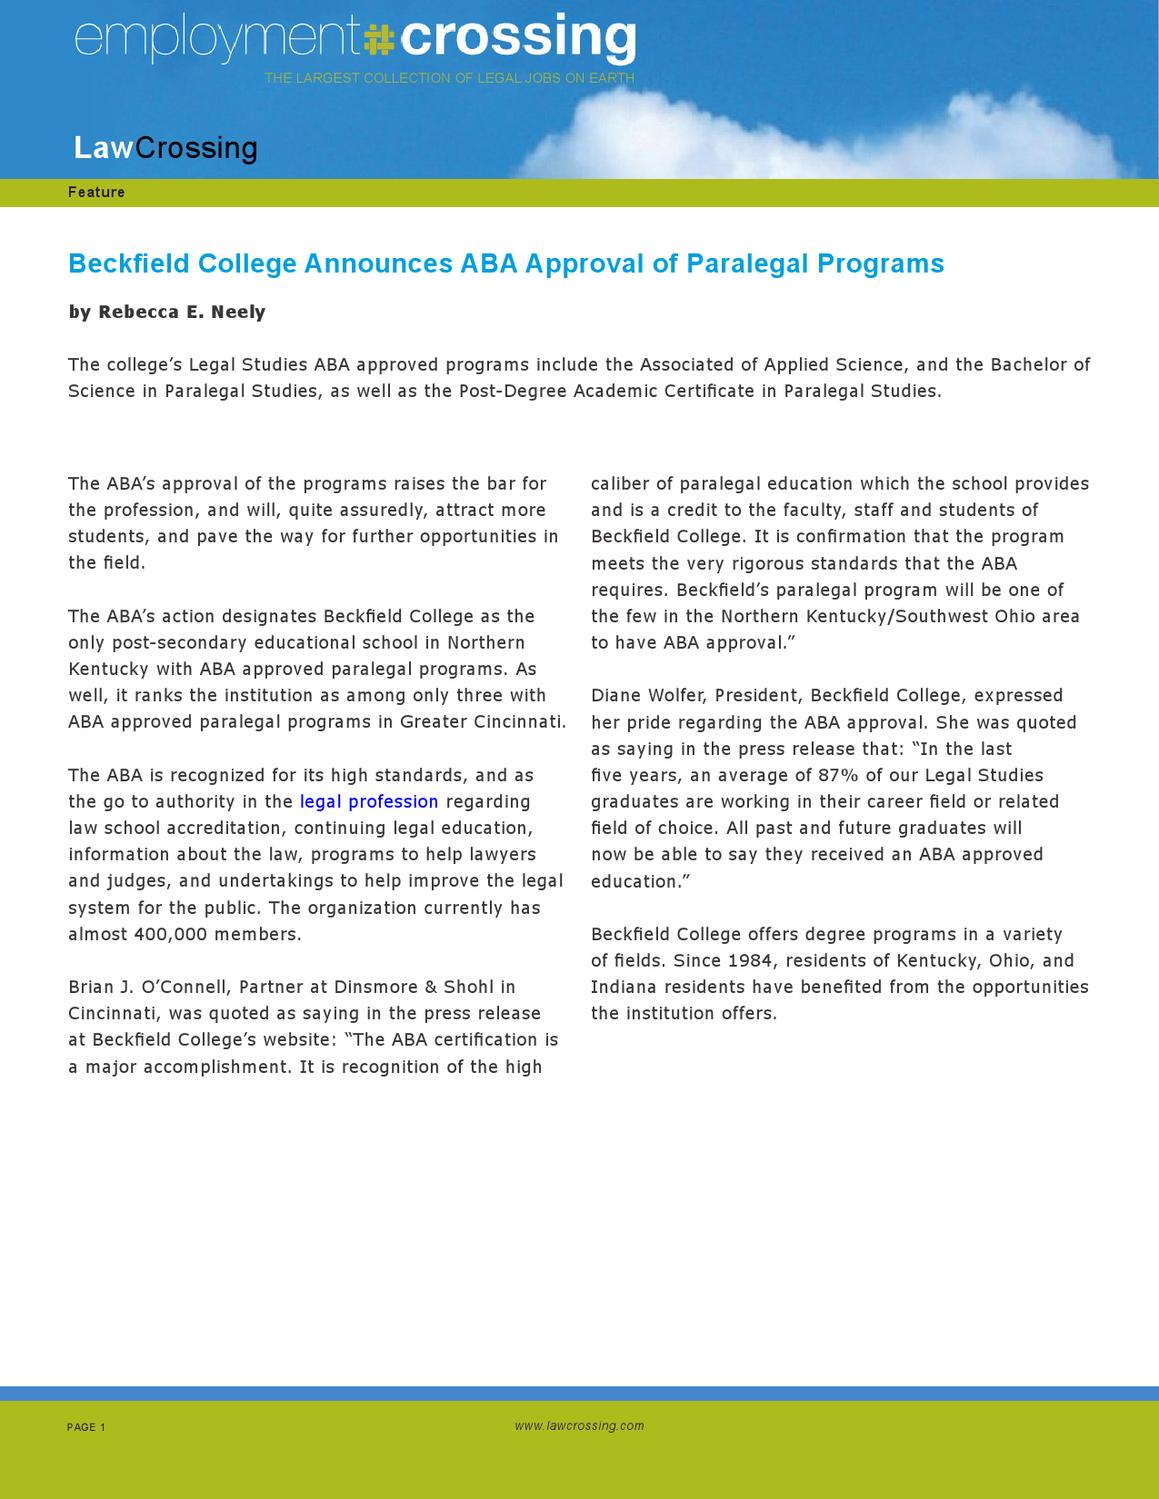 Beckfield College Announces Aba Approval Of Paralegal Programs By